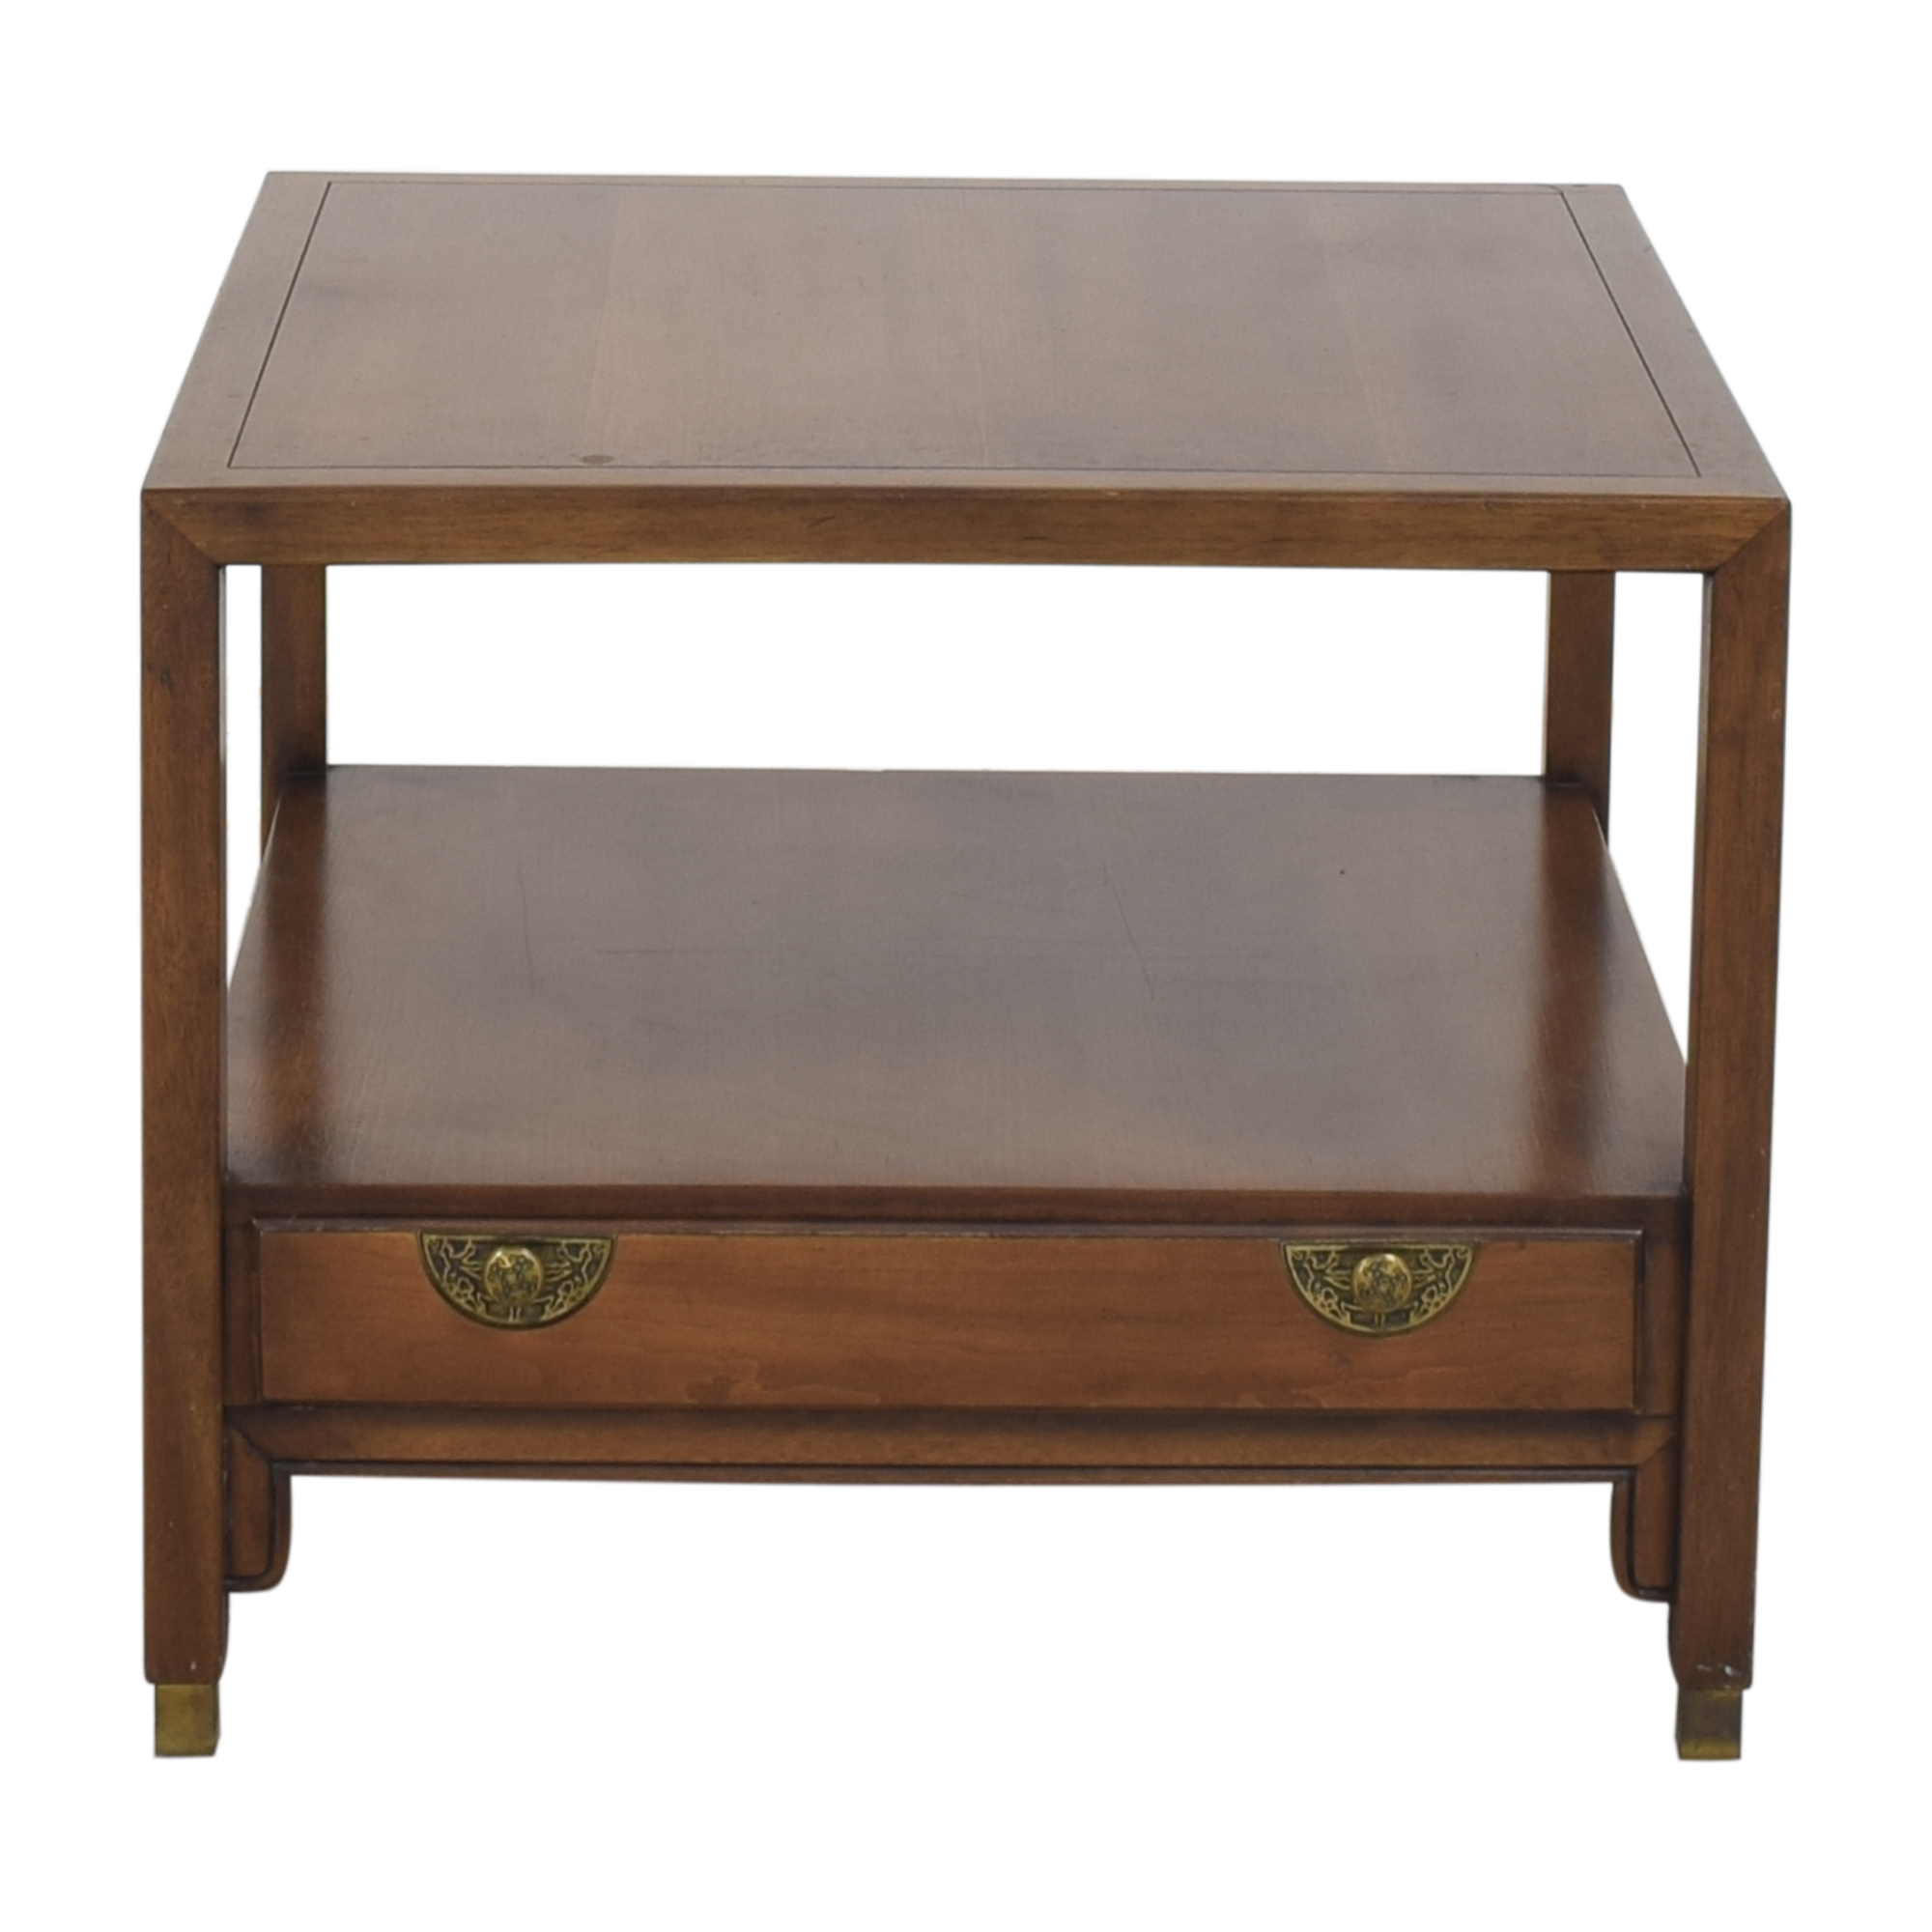 Century Furniture Century Furniture Chinoiserie End Table on sale